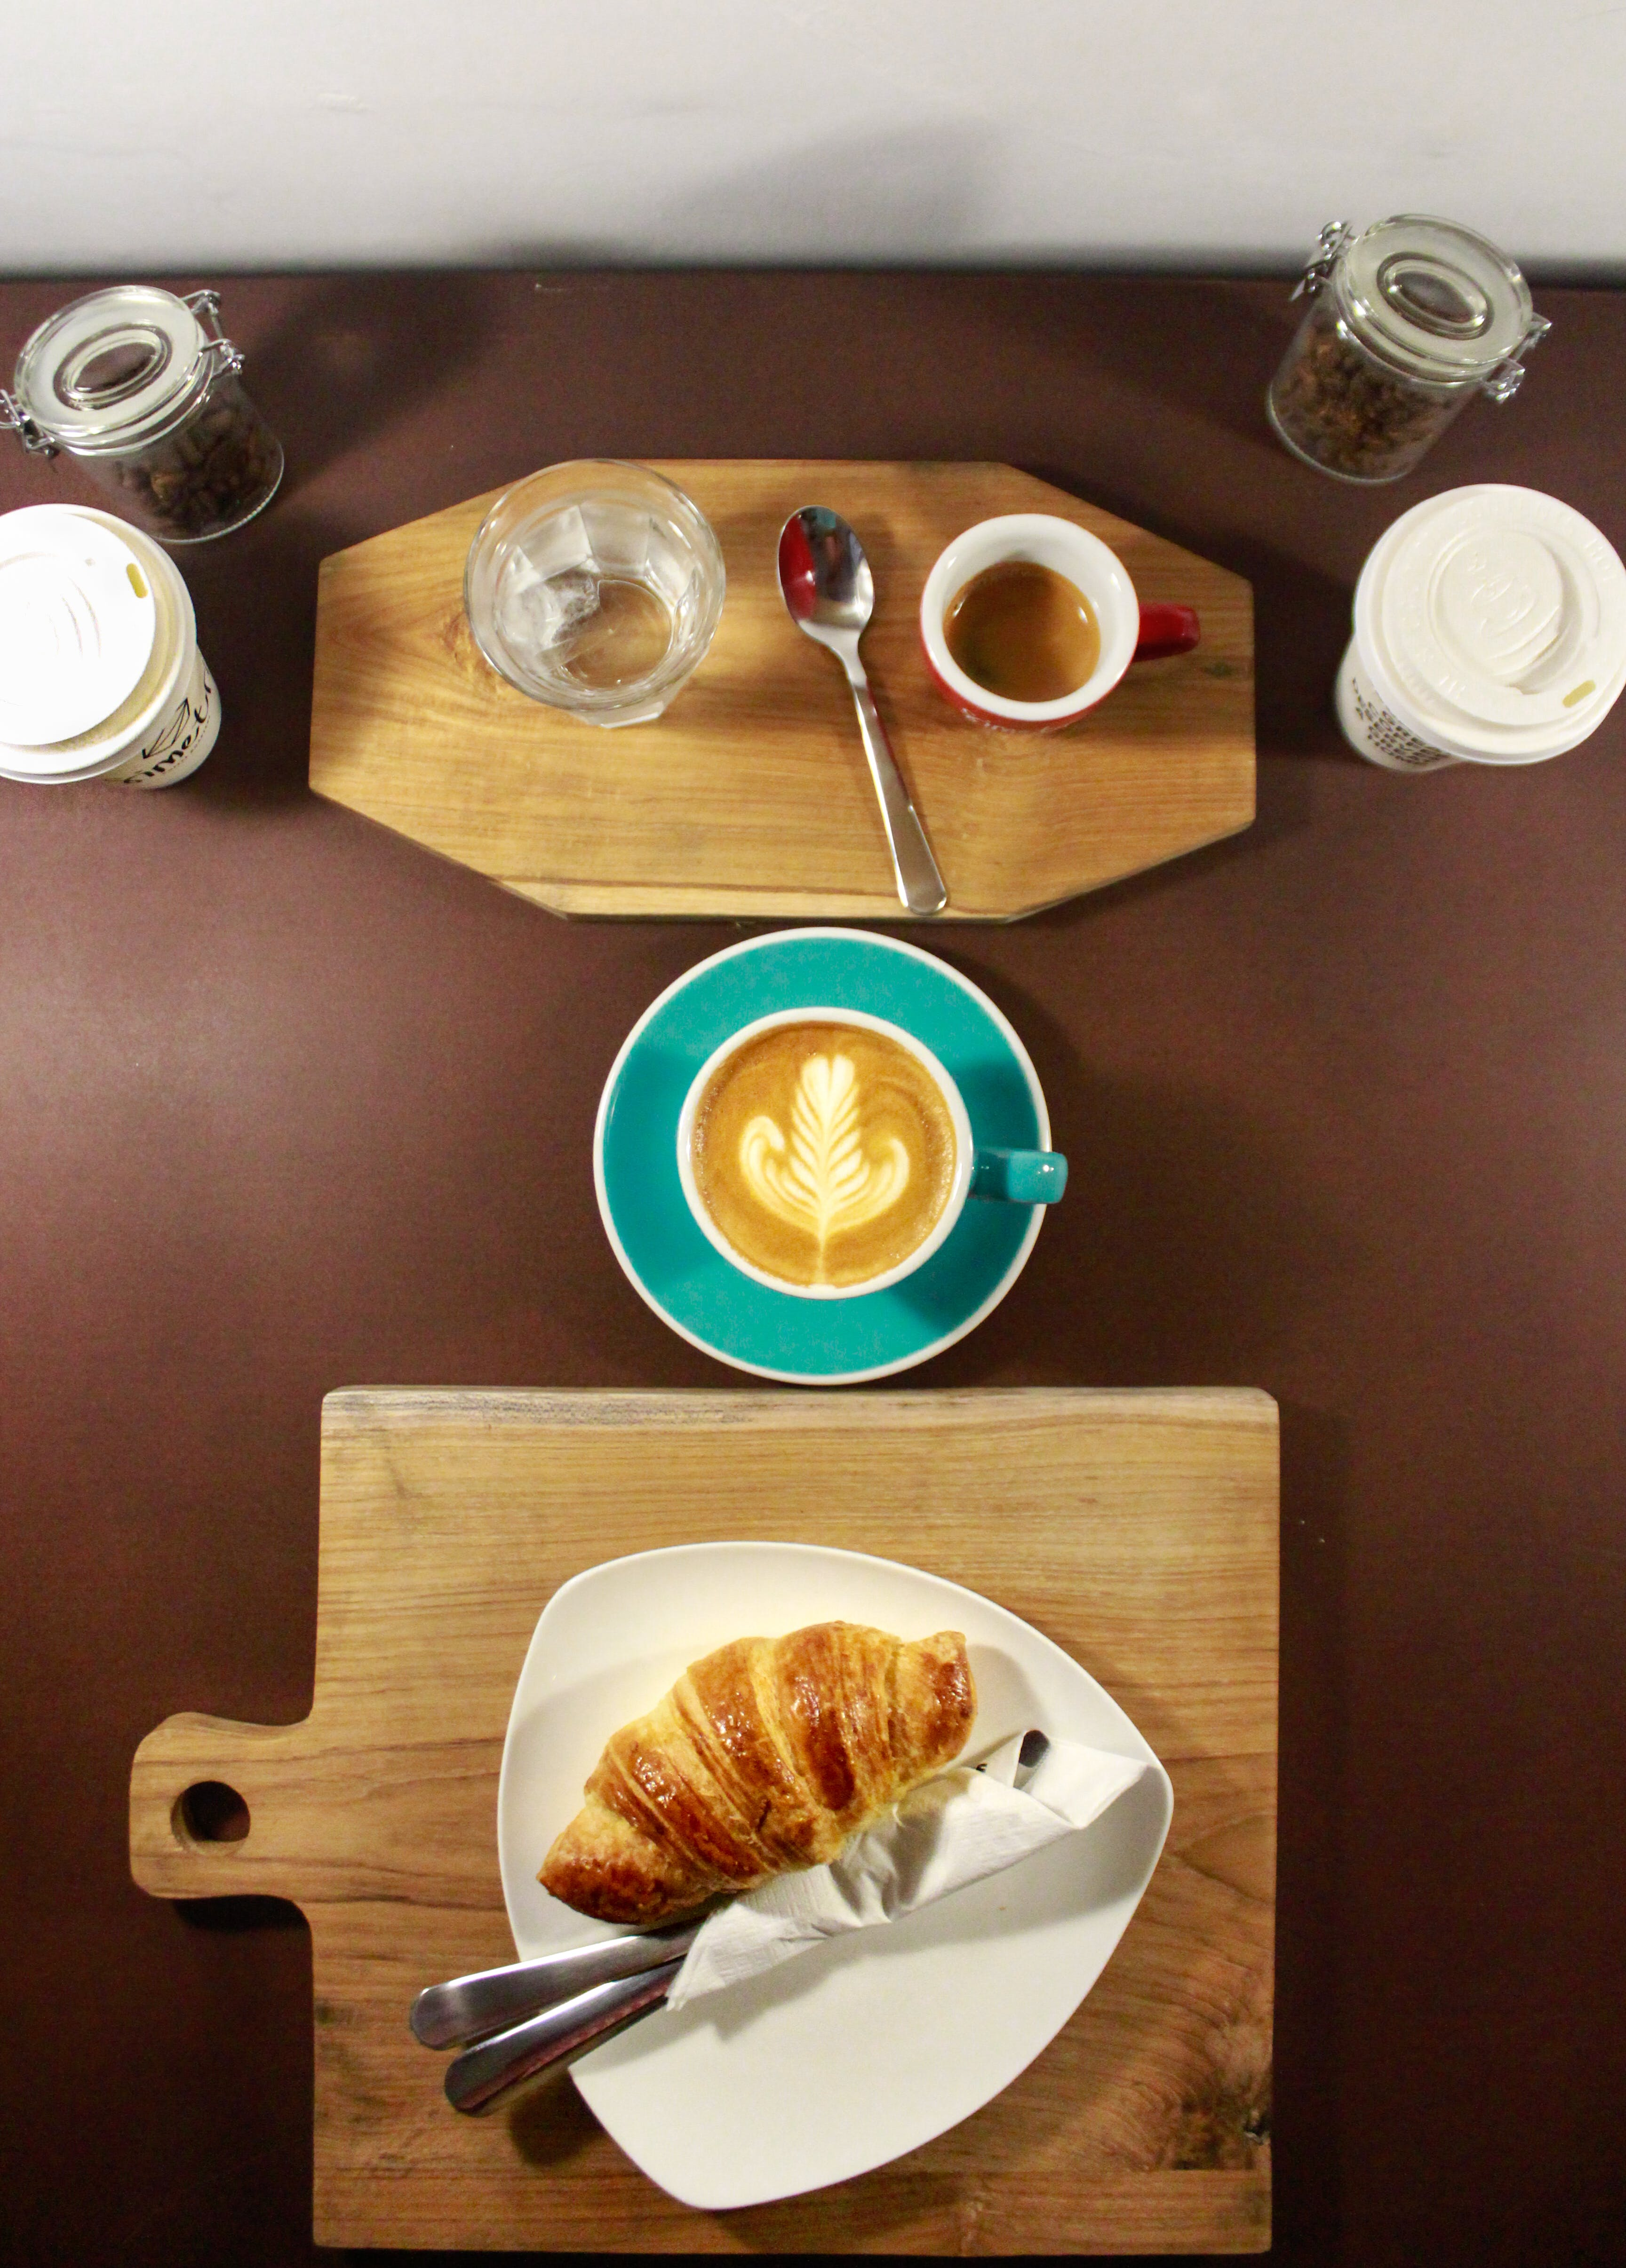 Flat Lay Food Photography of Plate of Croissant